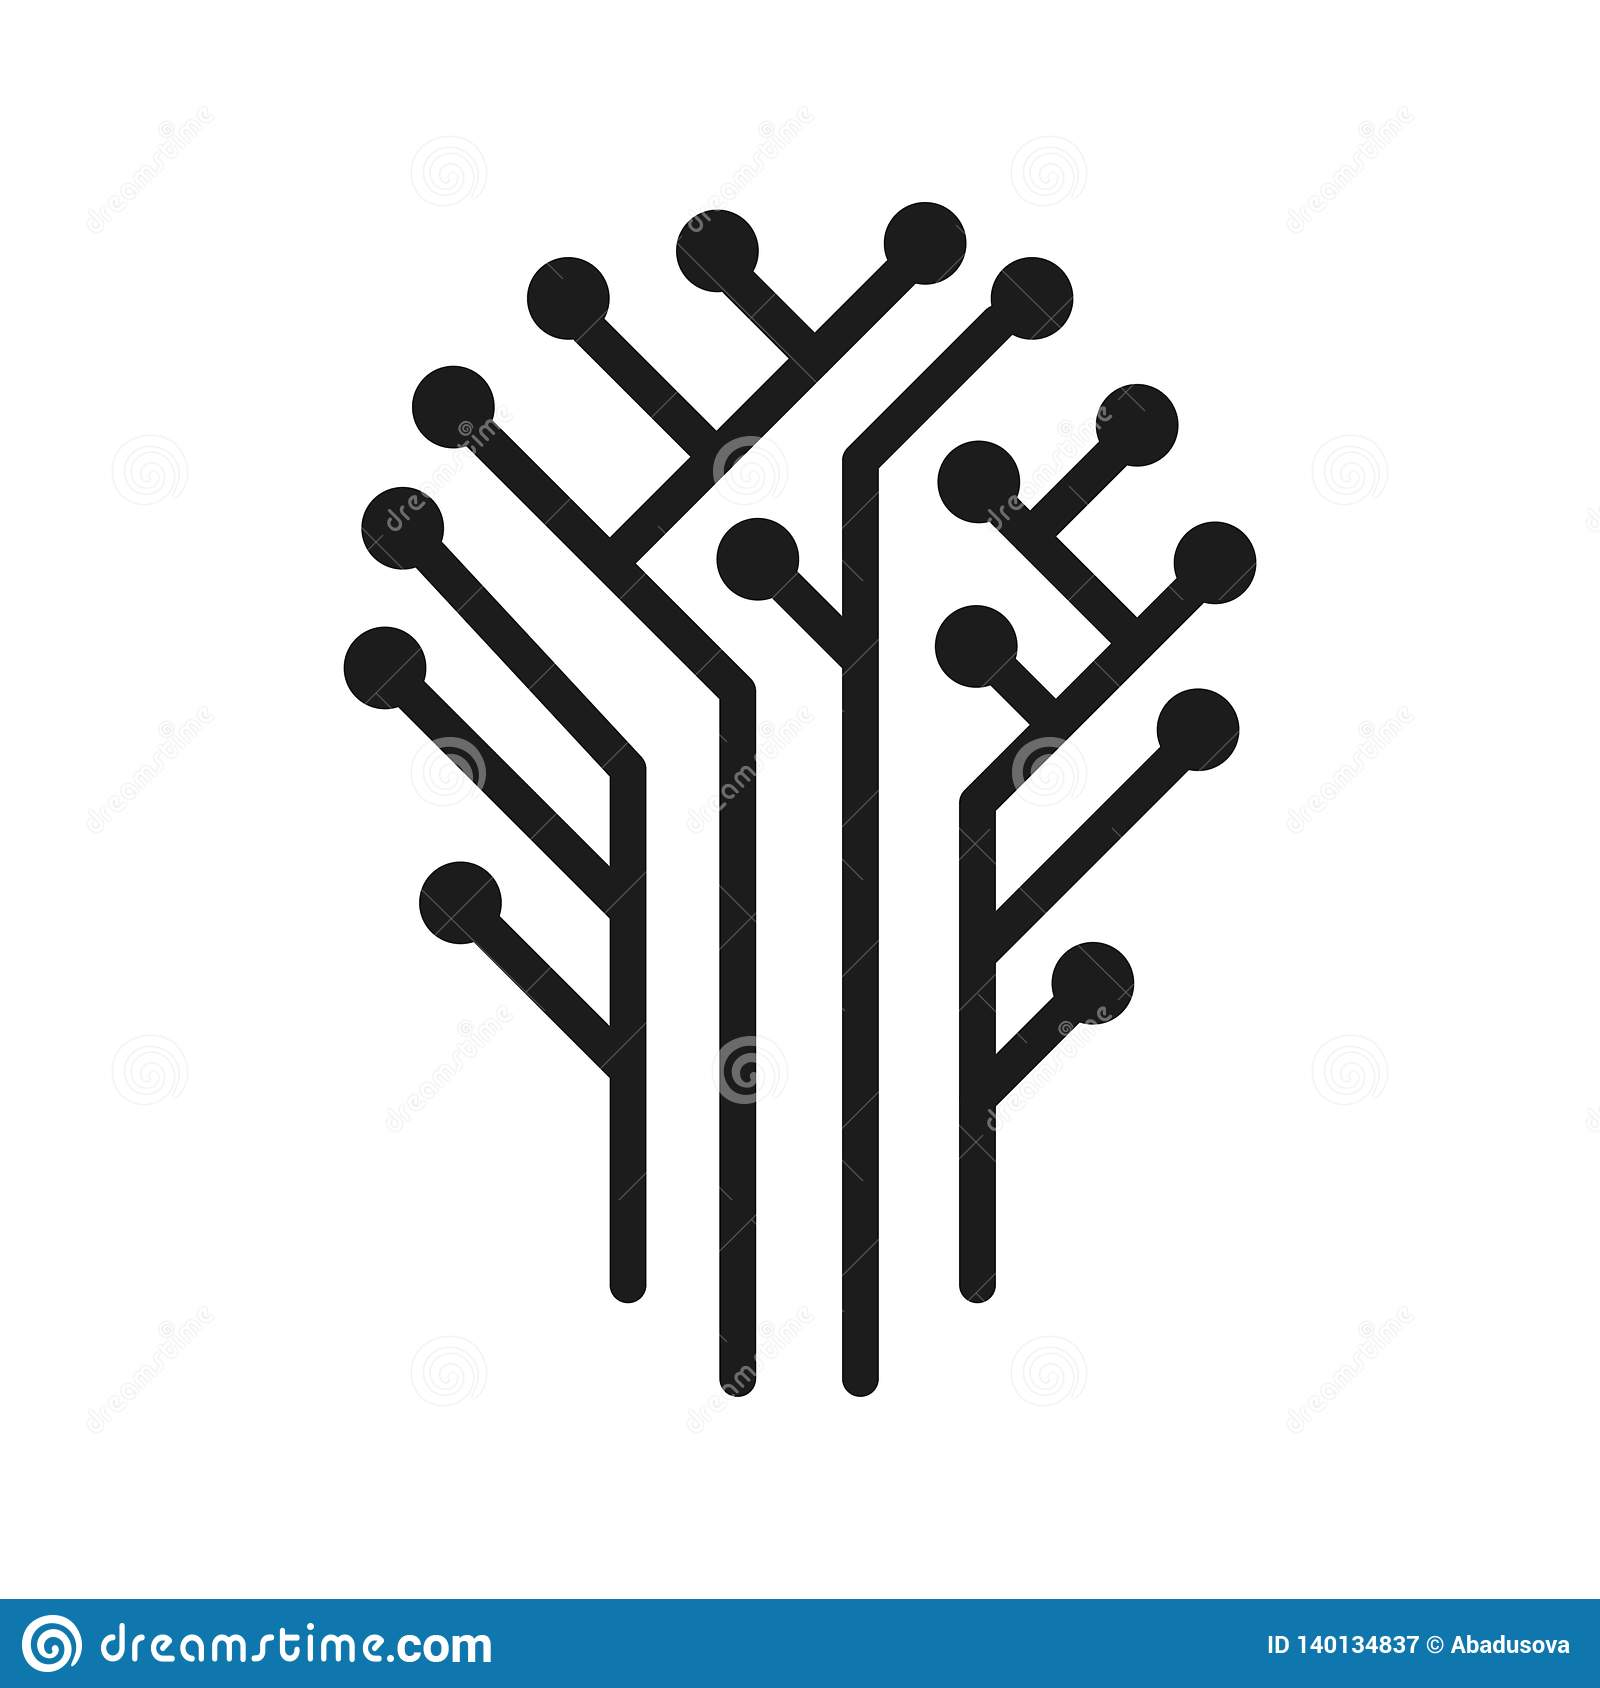 Vector Illustration Concept Of Technical Circuit Tree Graphic  Icon On White Background Stock